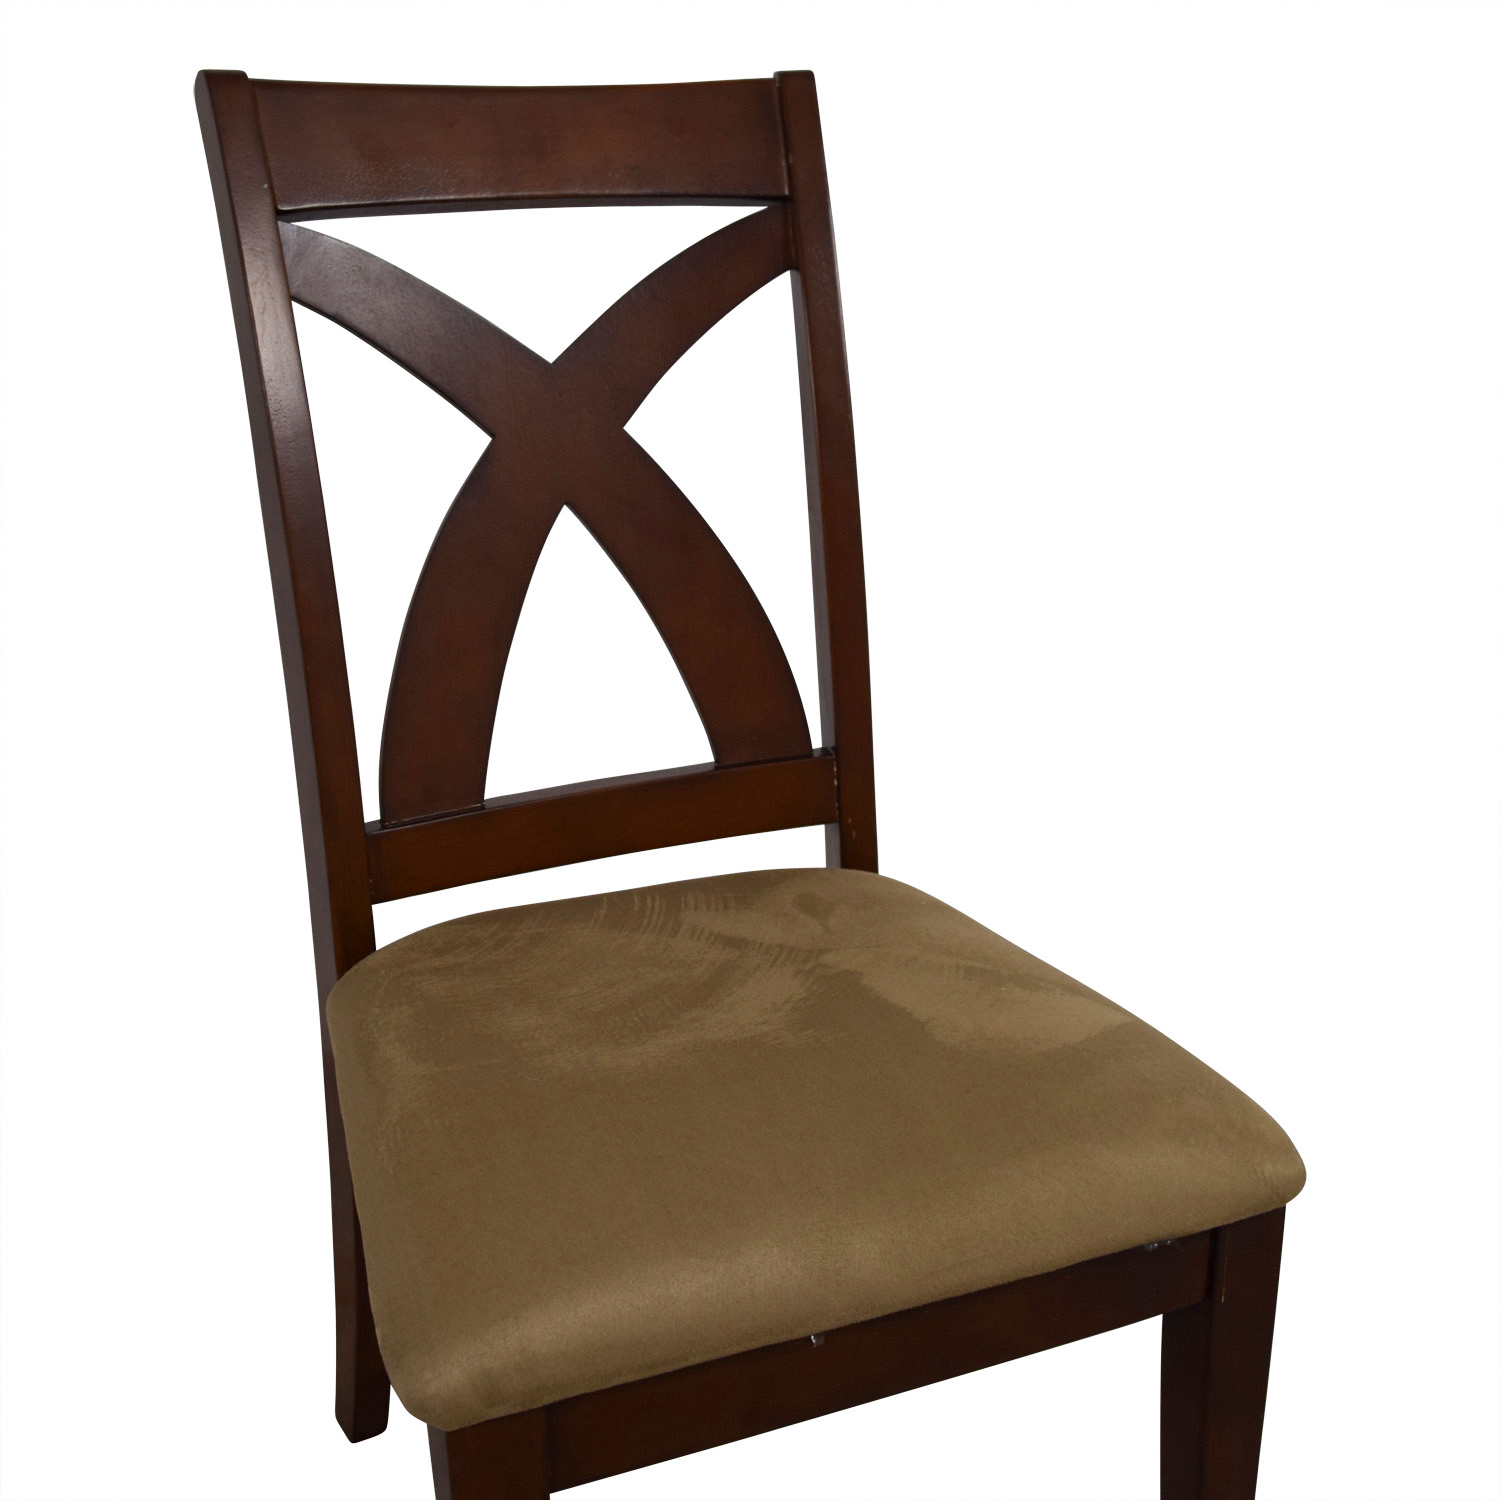 Solid Wood Chair with Cross Back & Padded Seat